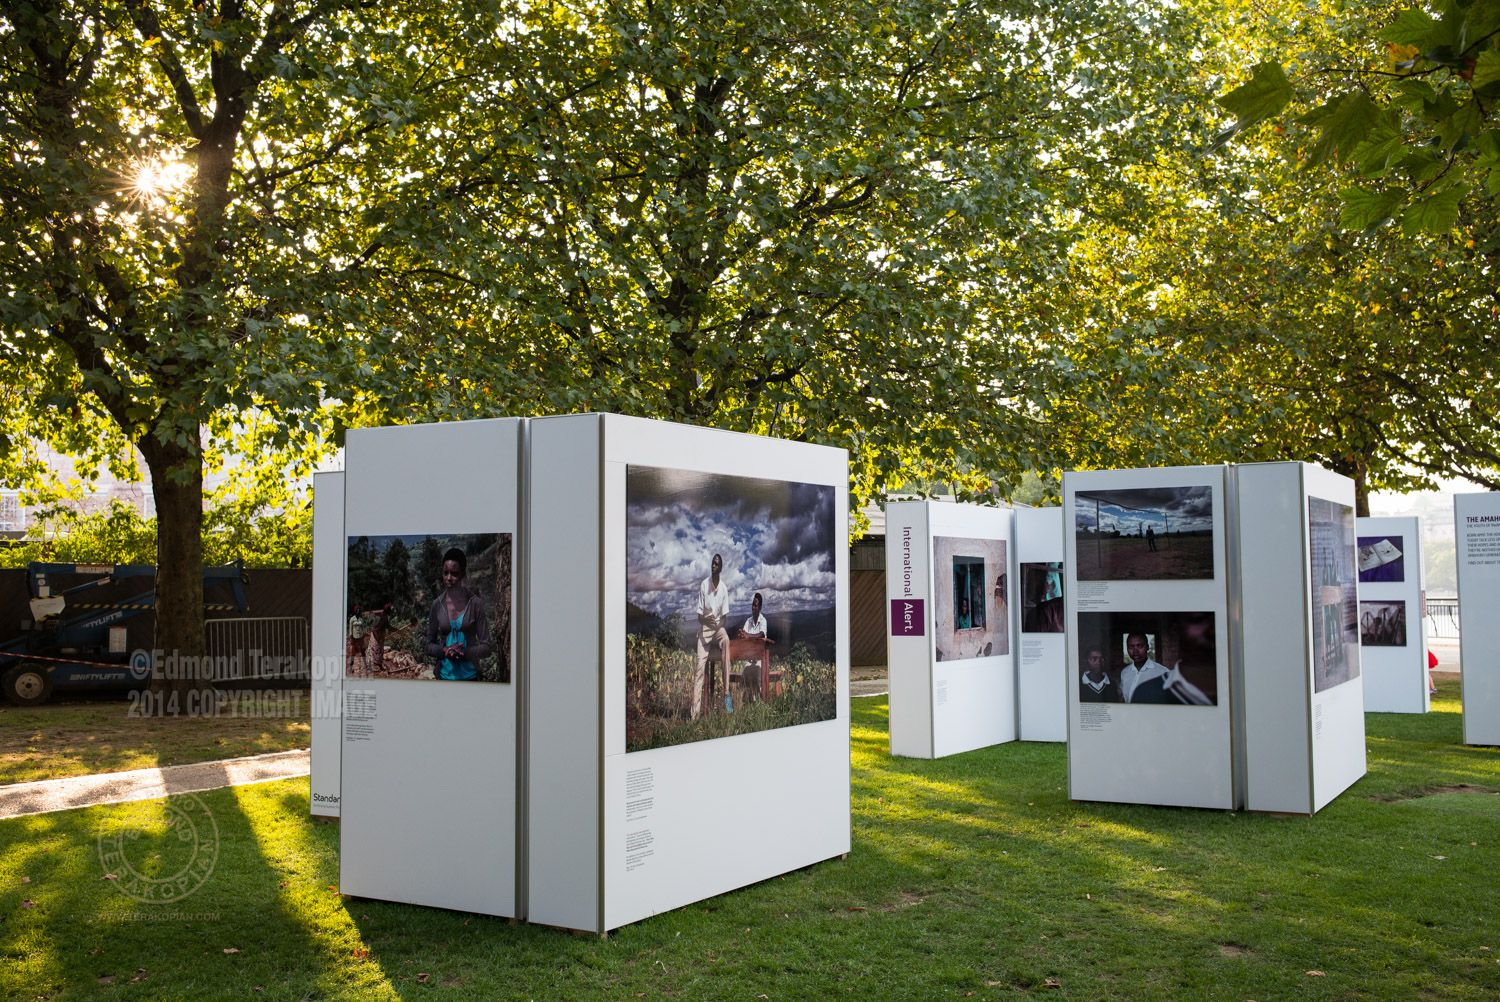 Outdoor Exhibition Buscar Con Google Exposiciones De